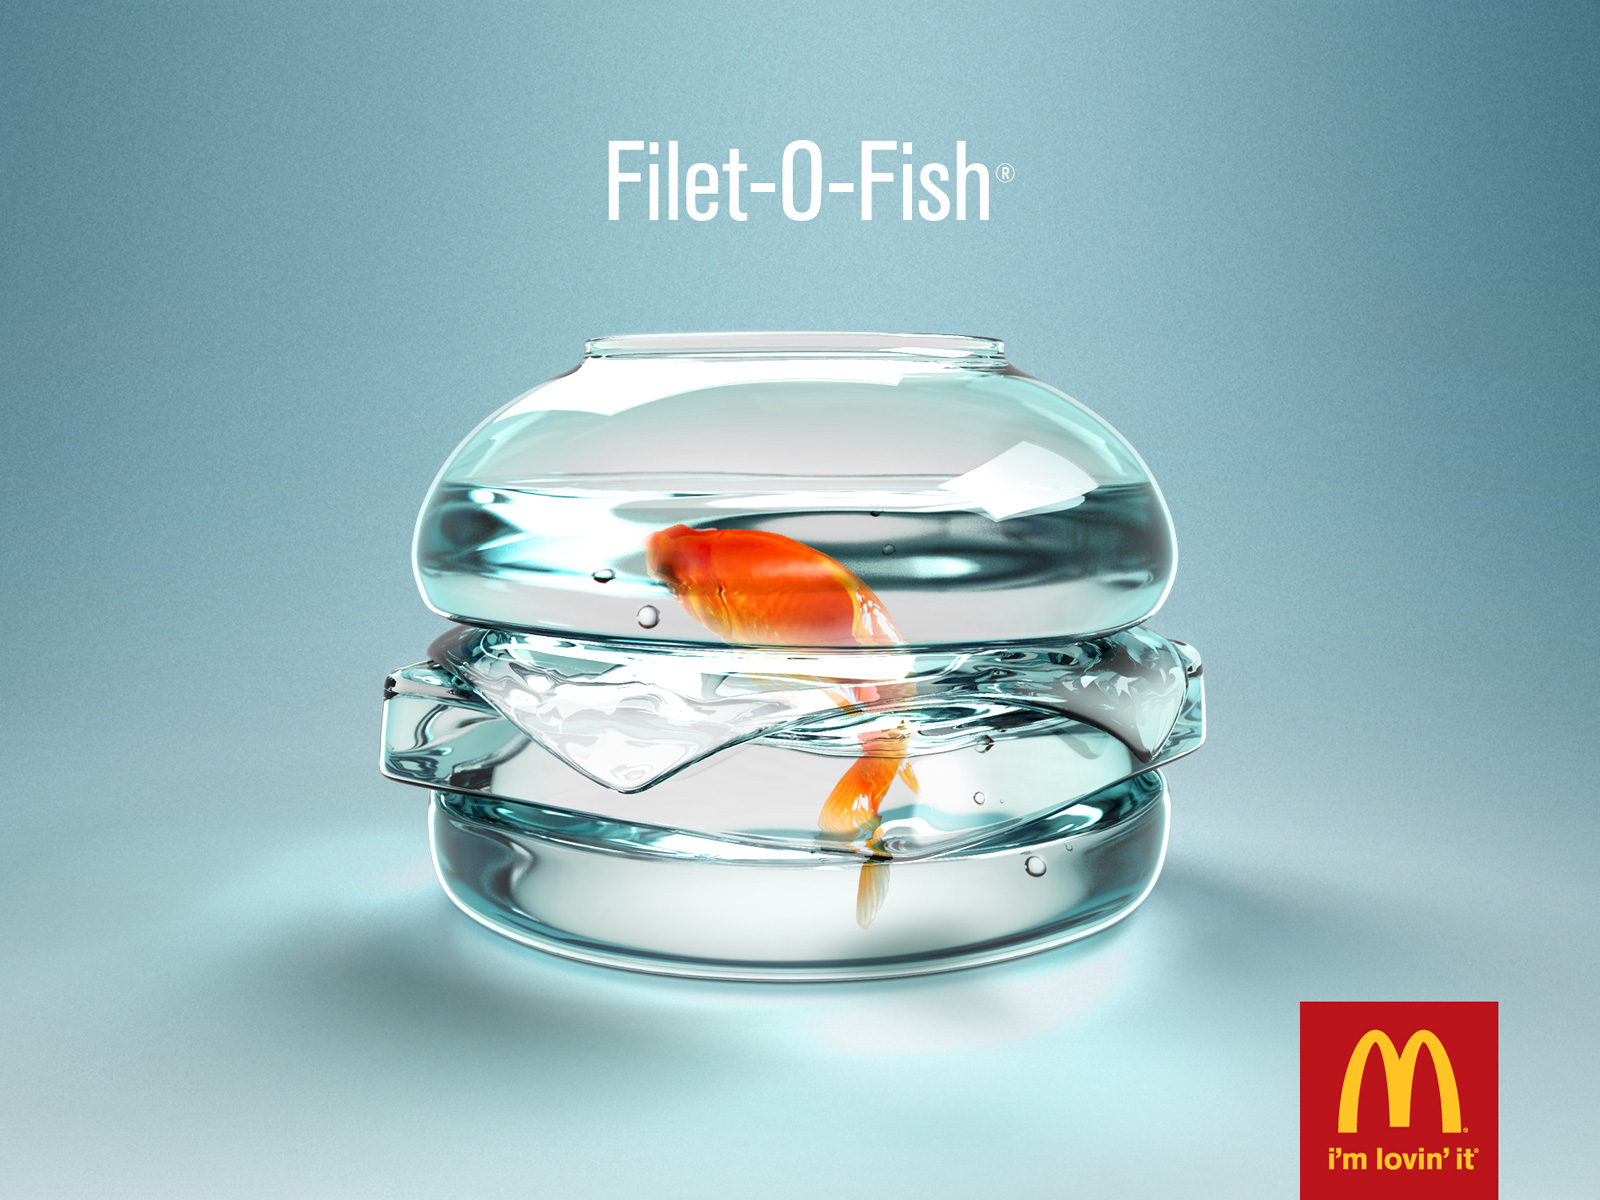 mcdonalds_filet_o_fish_fish_bowl_ibelieveinadv.jpeg